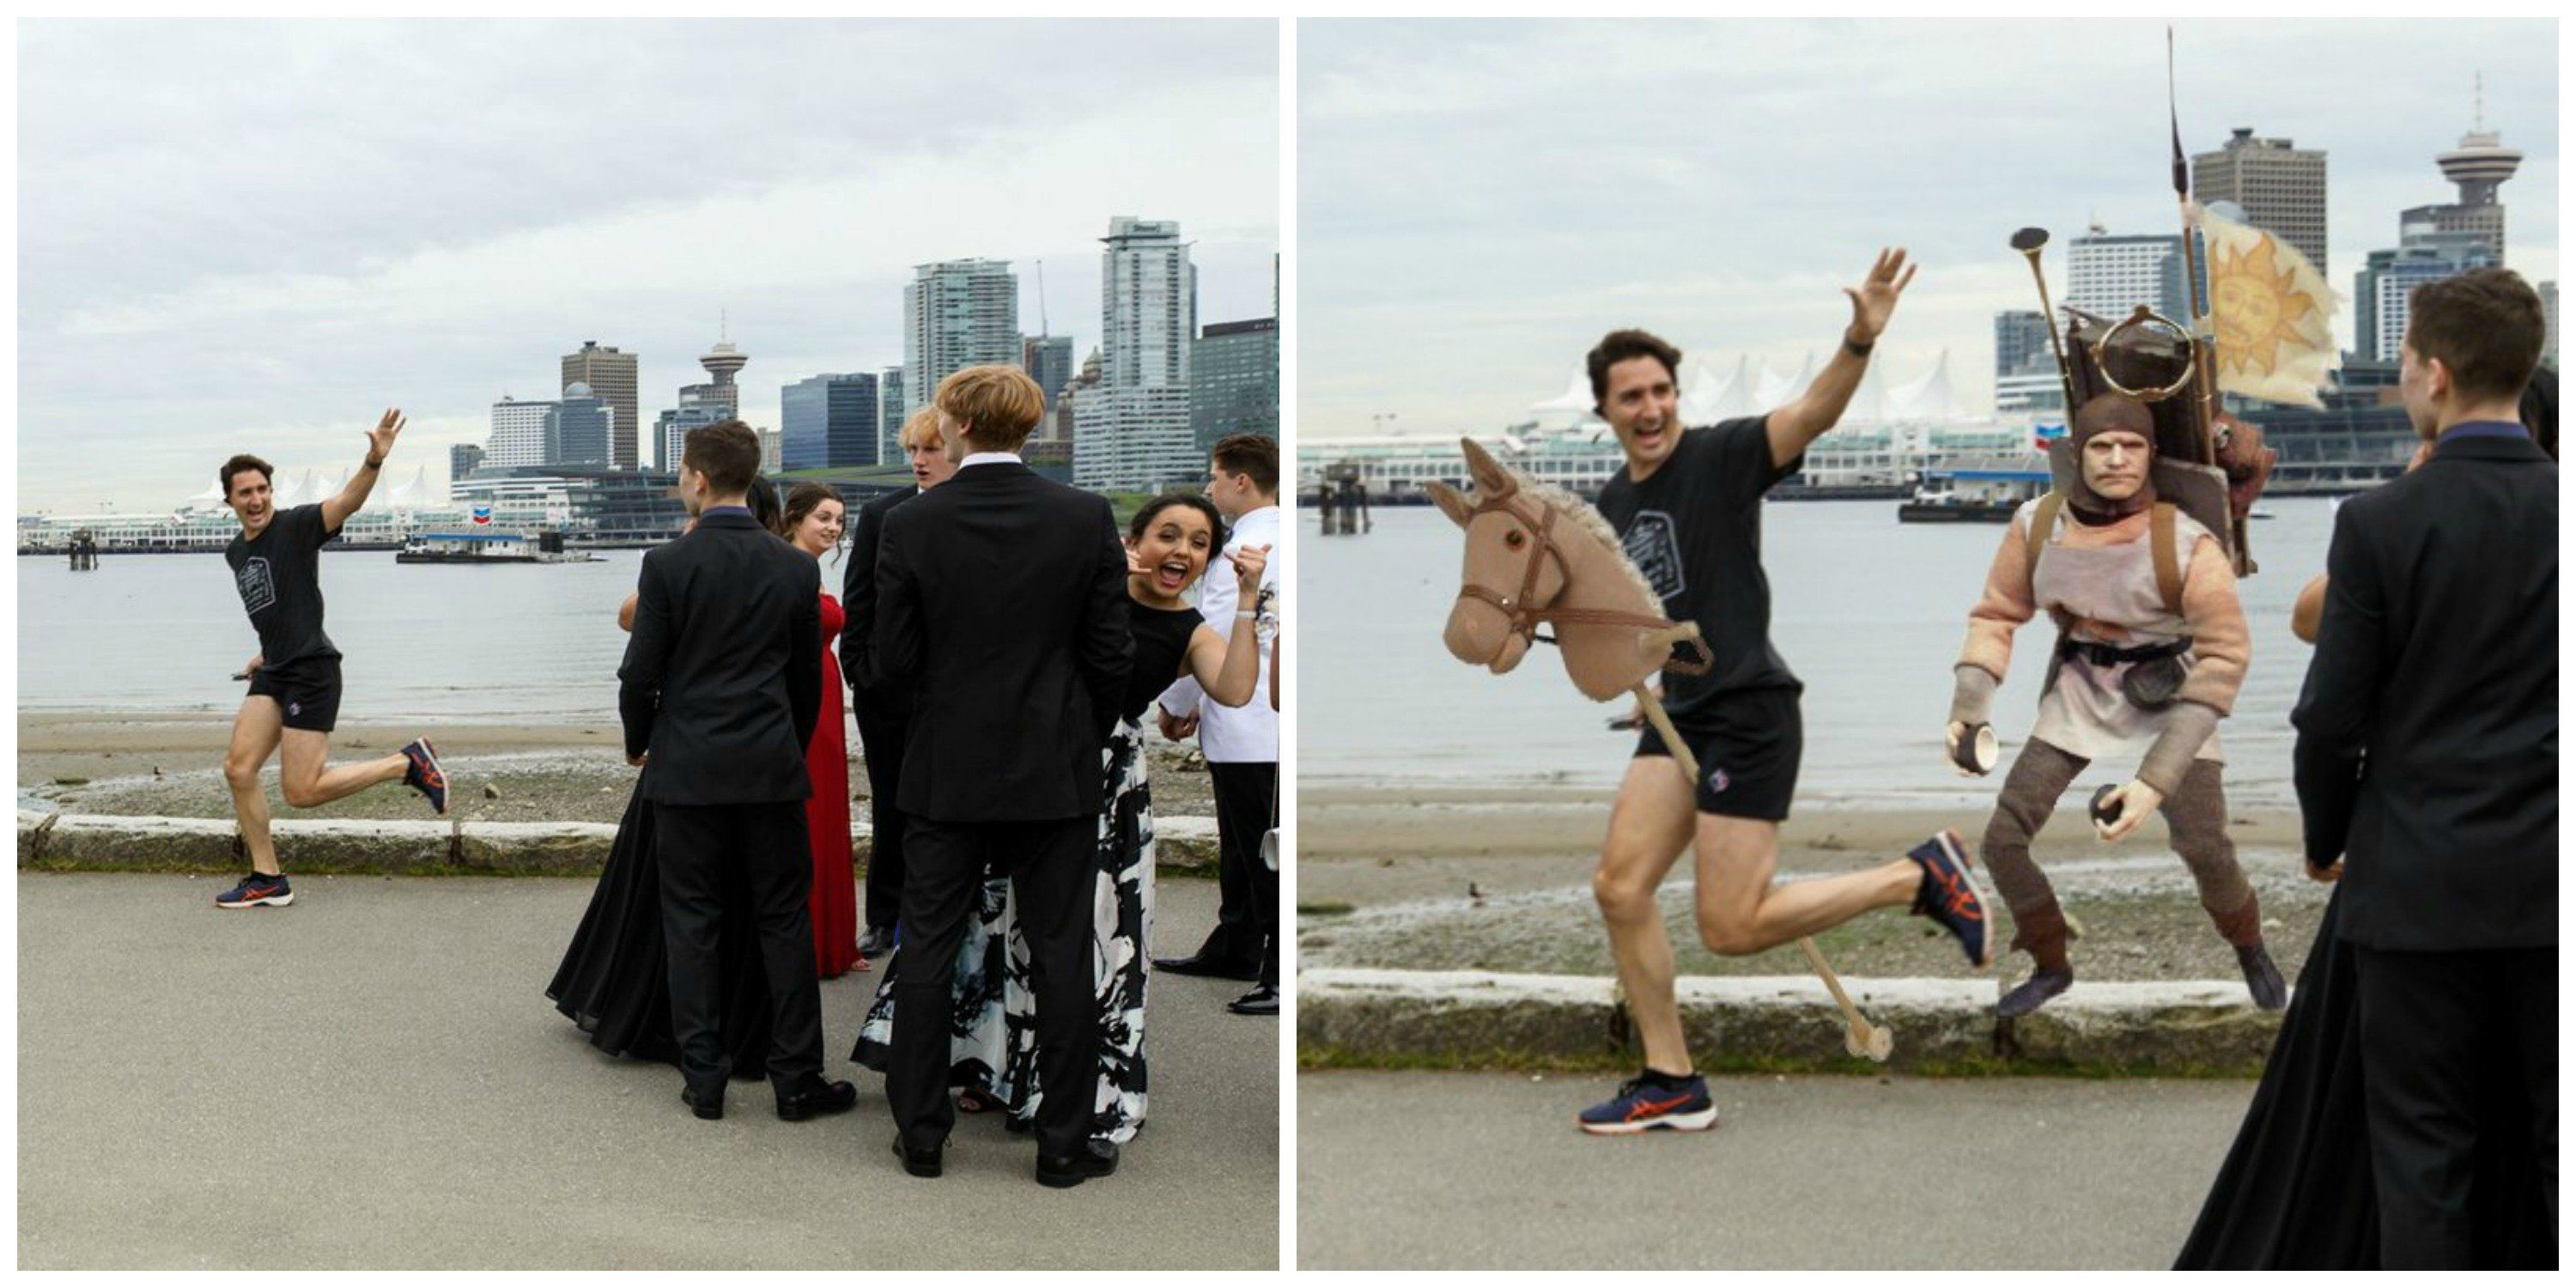 Justin Trudeau's Prom Photo Bomb Gets Hilarious Photoshop